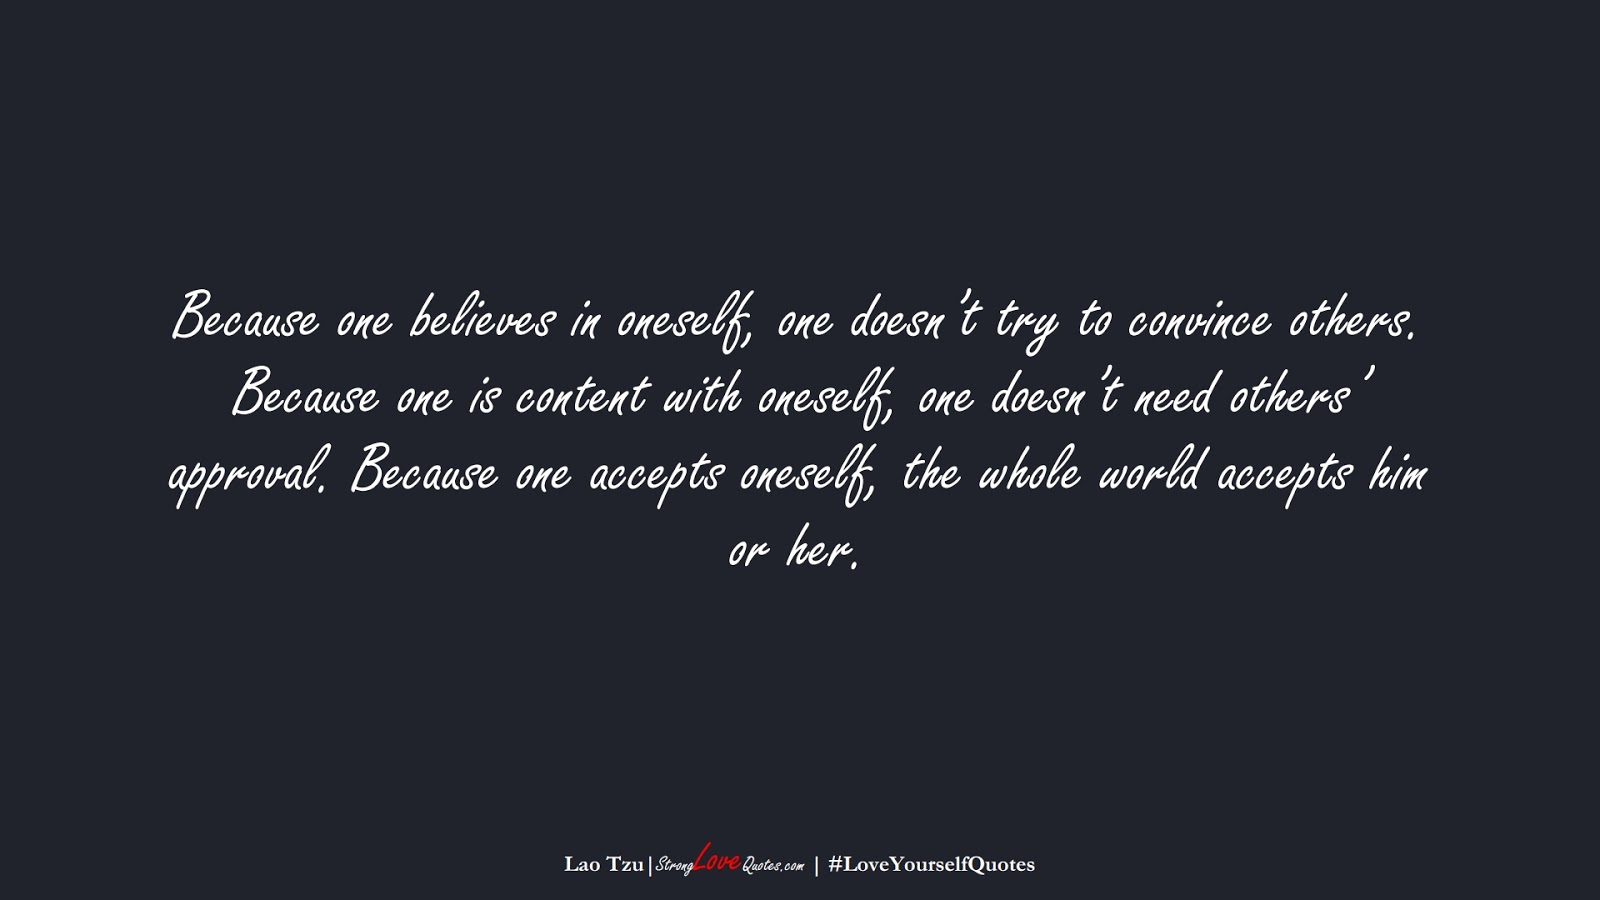 Because one believes in oneself, one doesn't try to convince others. Because one is content with oneself, one doesn't need others' approval. Because one accepts oneself, the whole world accepts him or her. (Lao Tzu);  #LoveYourselfQuotes